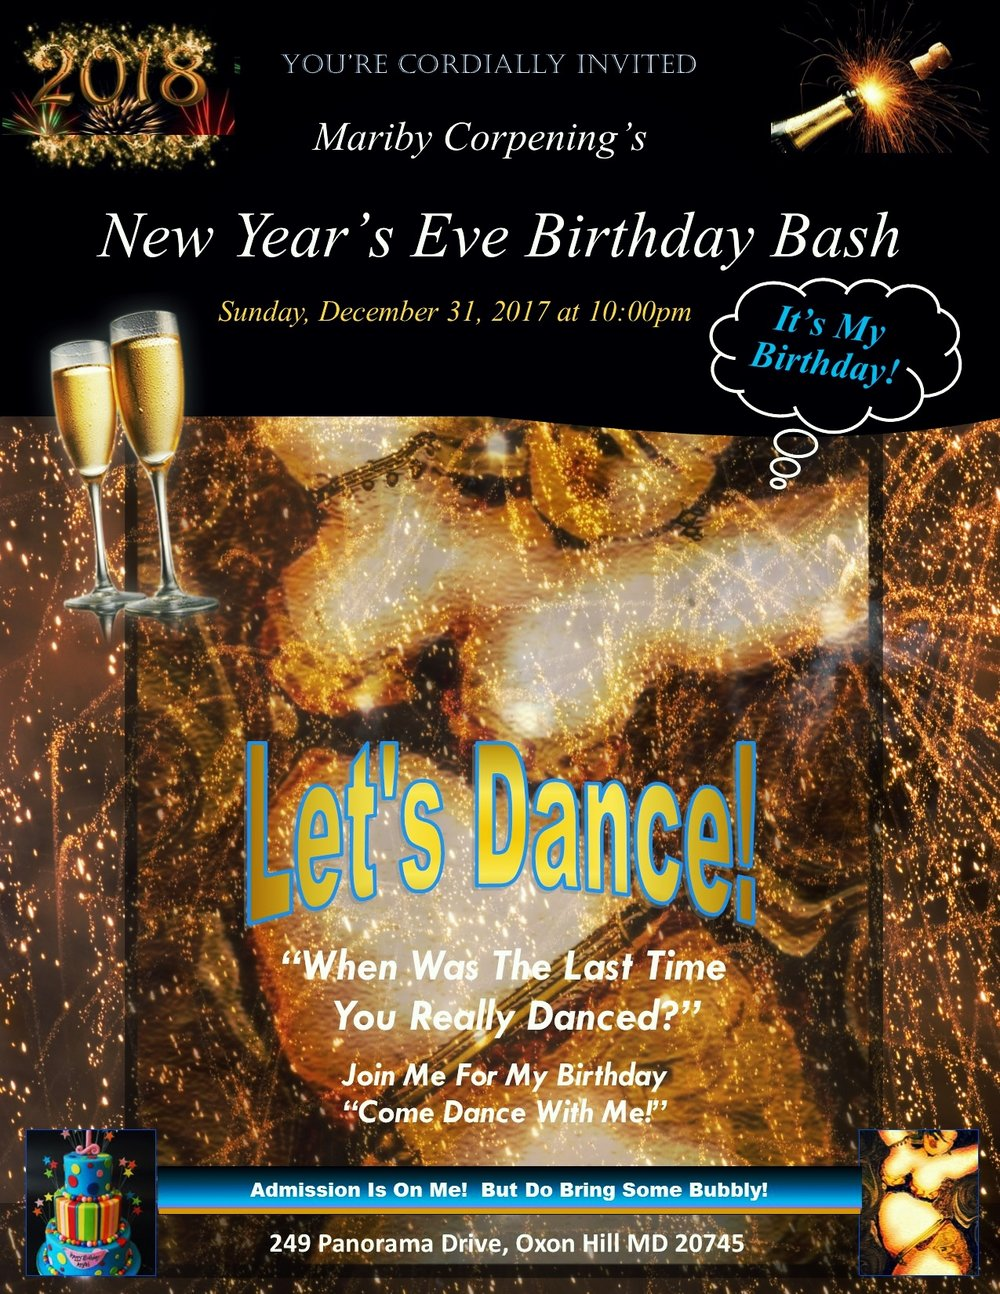 Flyer - Mariby Corpening's New Years Eve Birthday Bash2.jpg